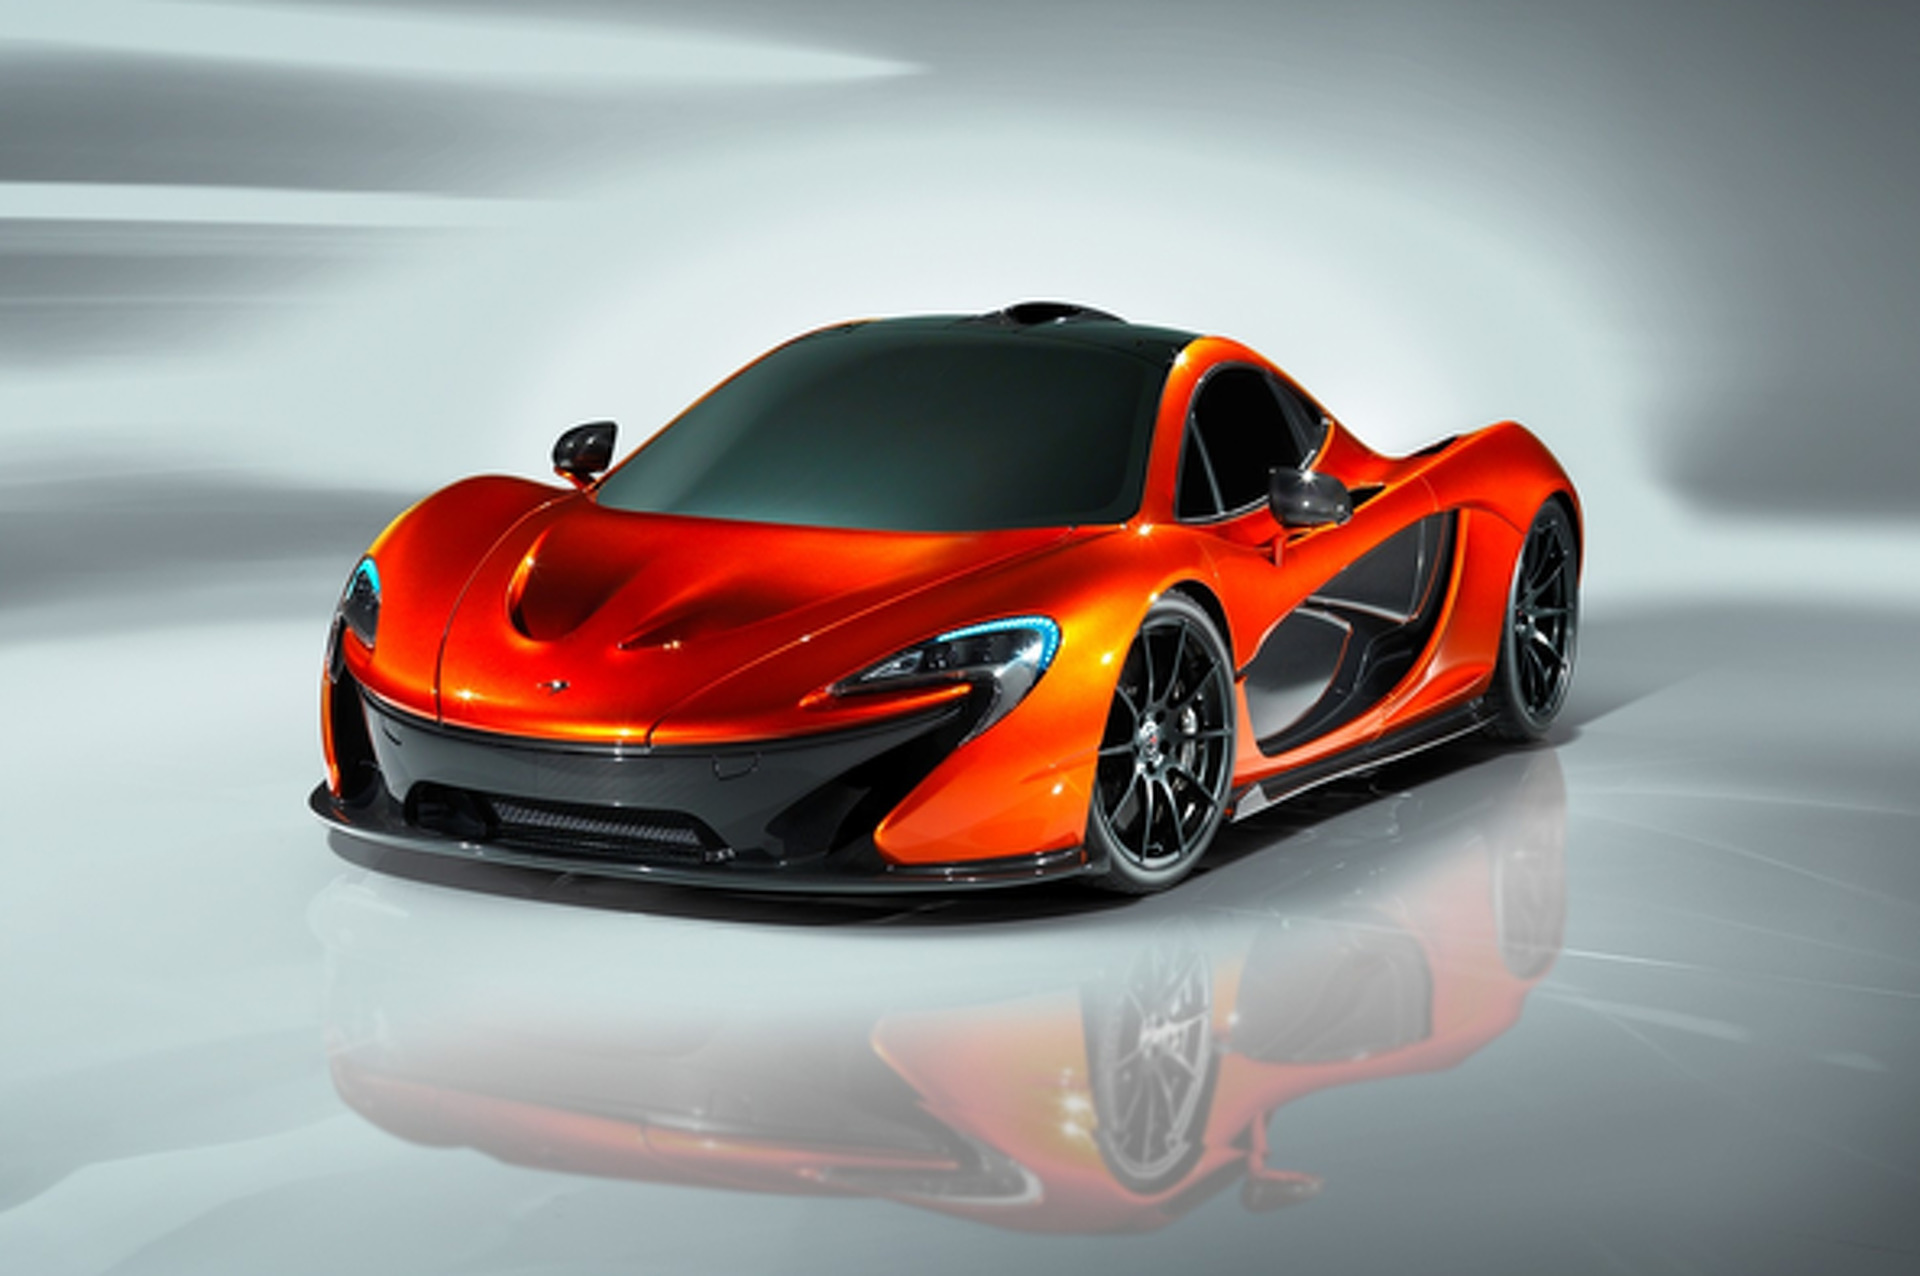 12 Cars of Christmas: McLaren P1